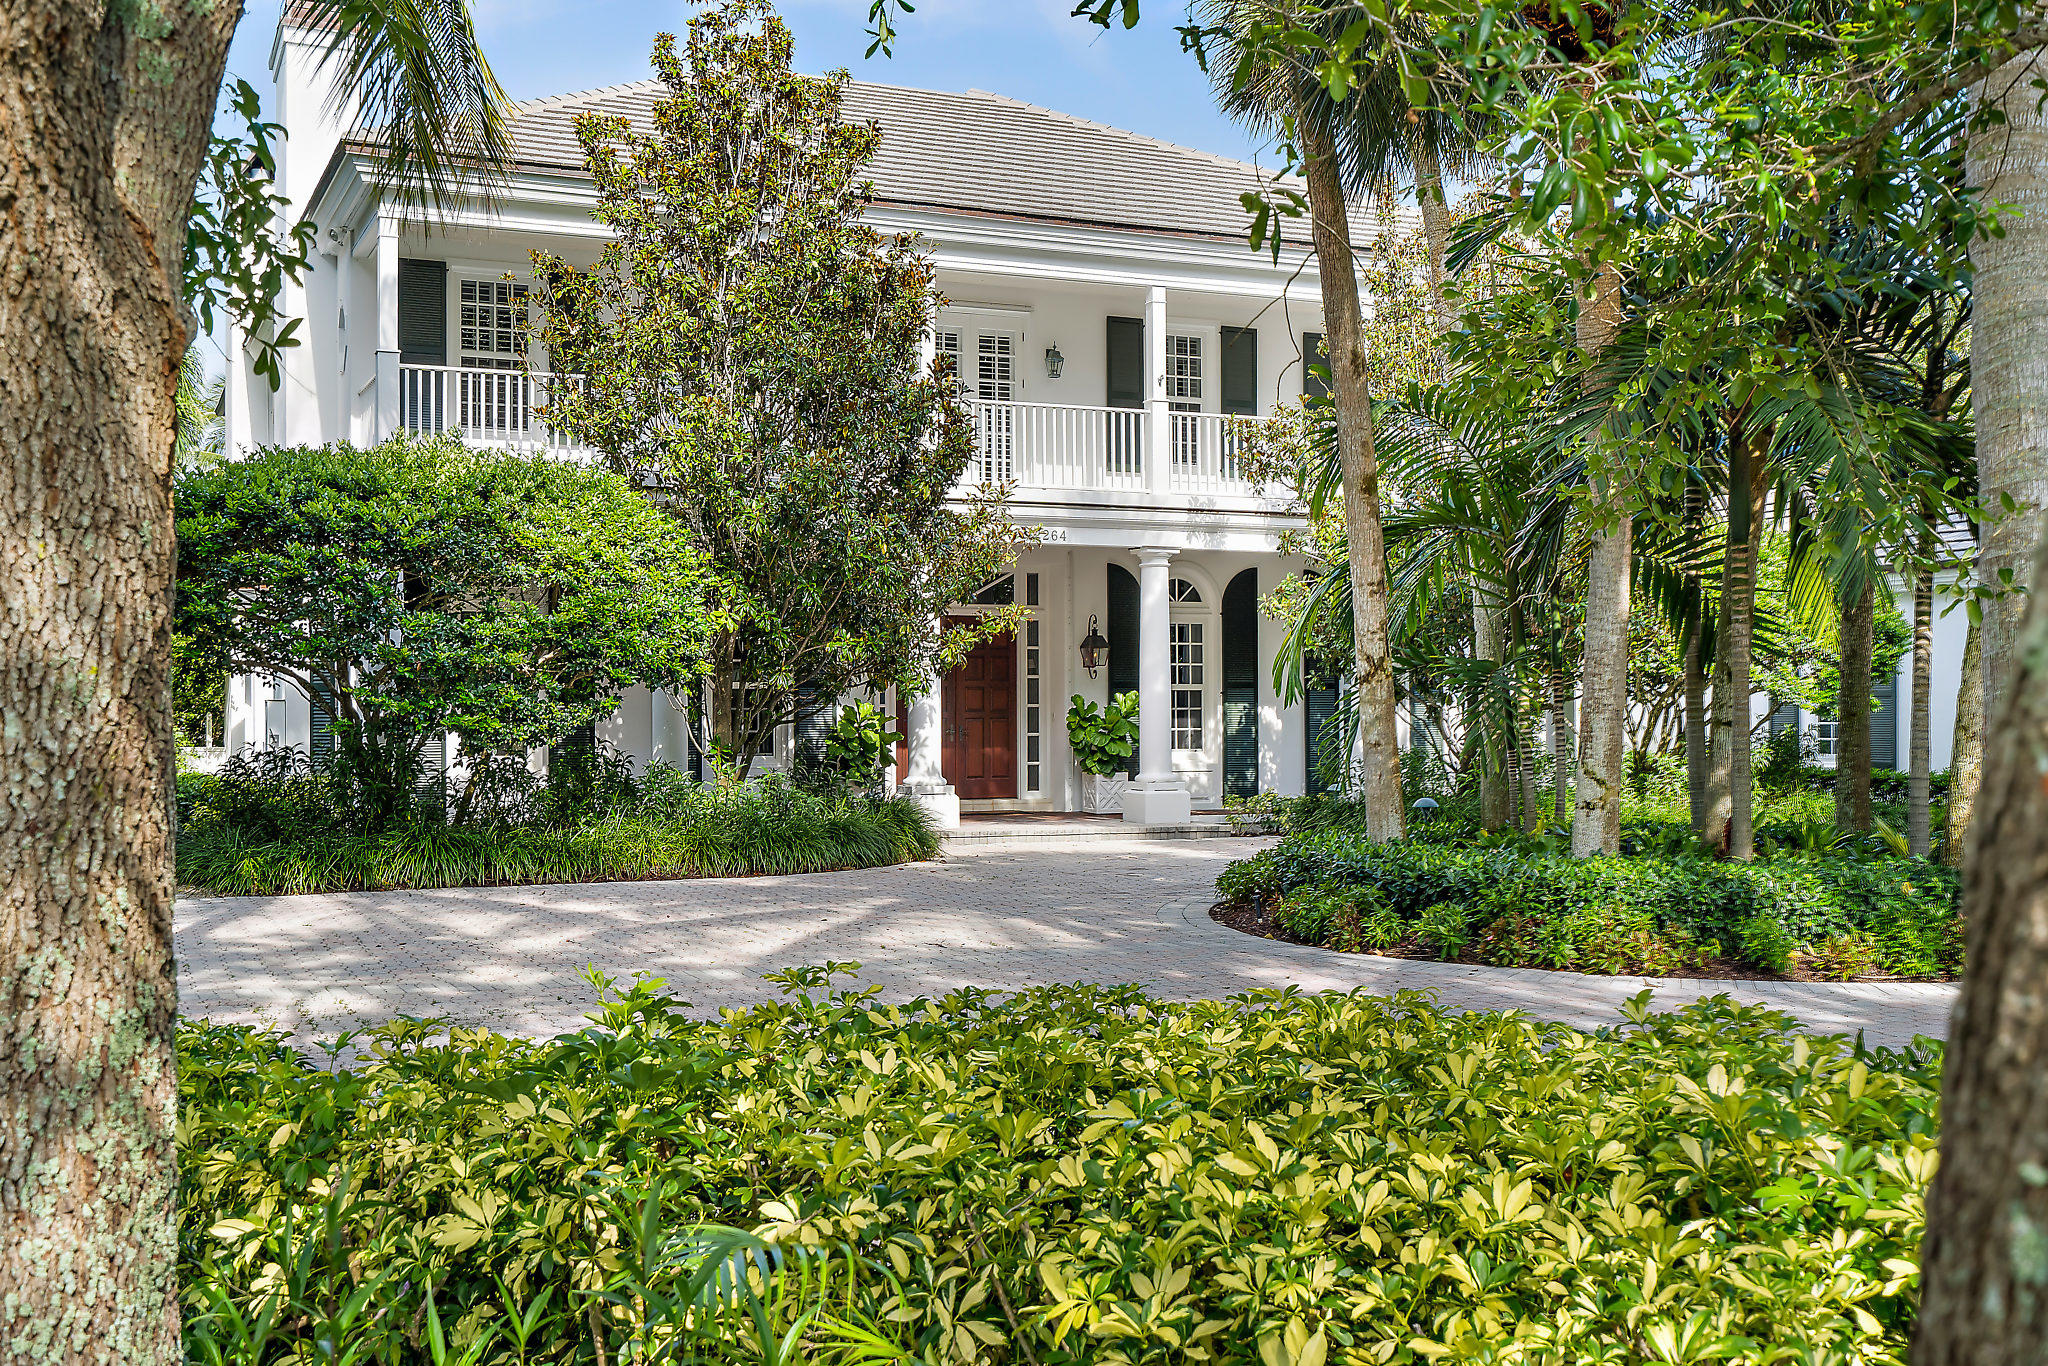 12264 Indian Road, North Palm Beach, Florida 5 Bedroom as one of Homes & Land Real Estate